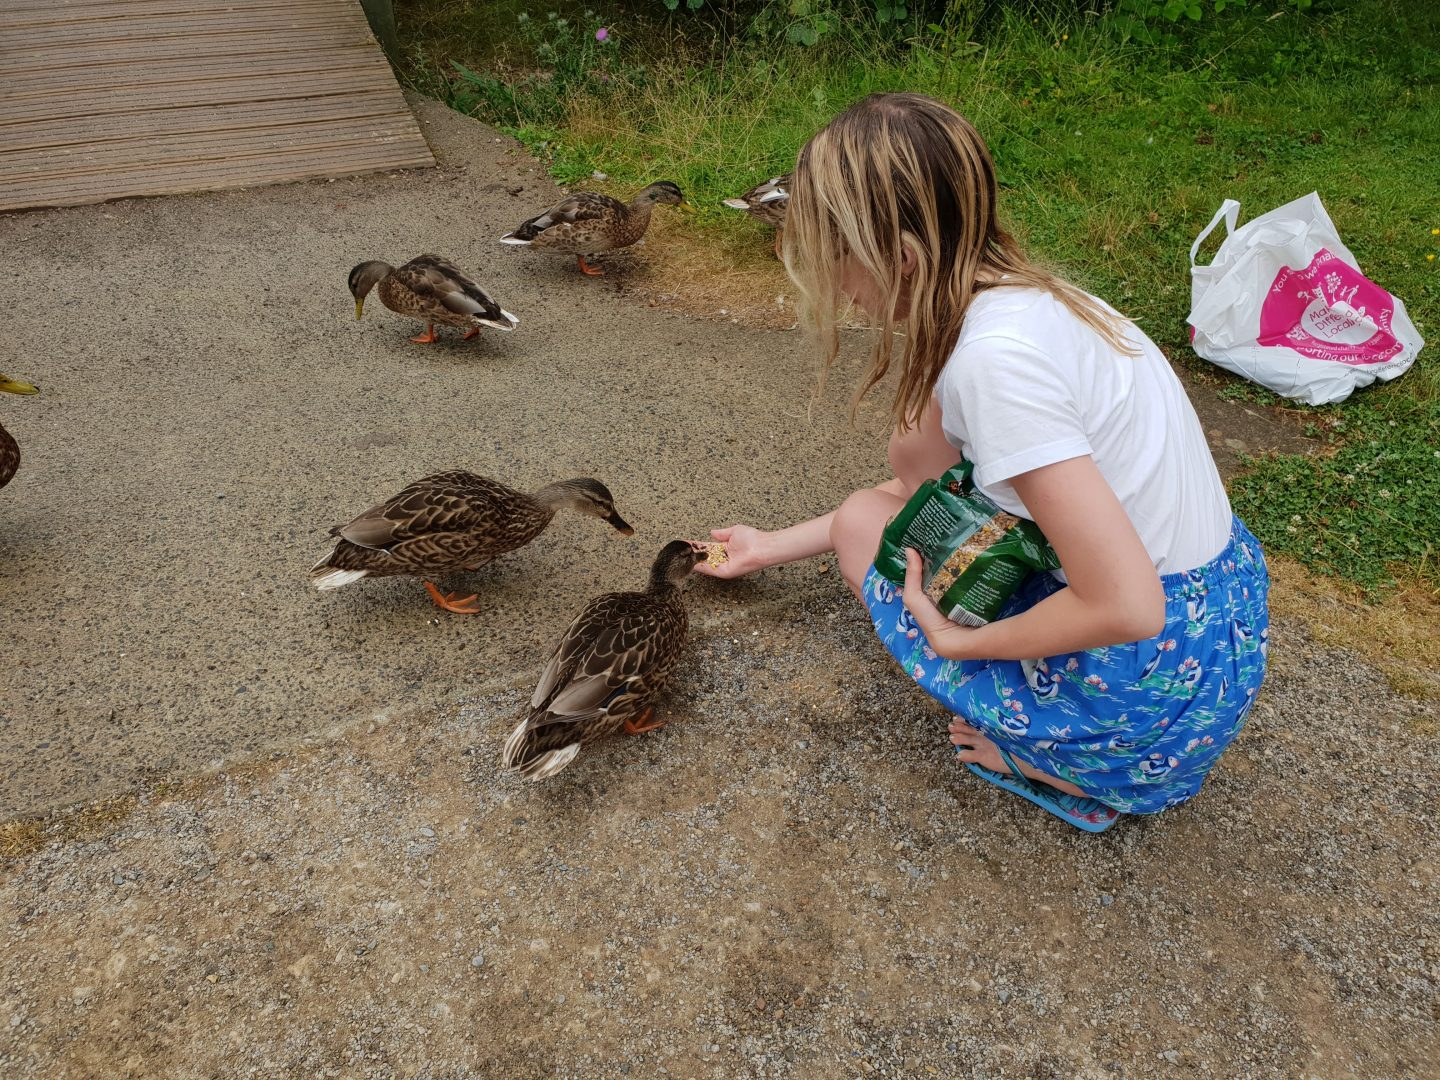 Feeding ducks at Bluestone, Wales